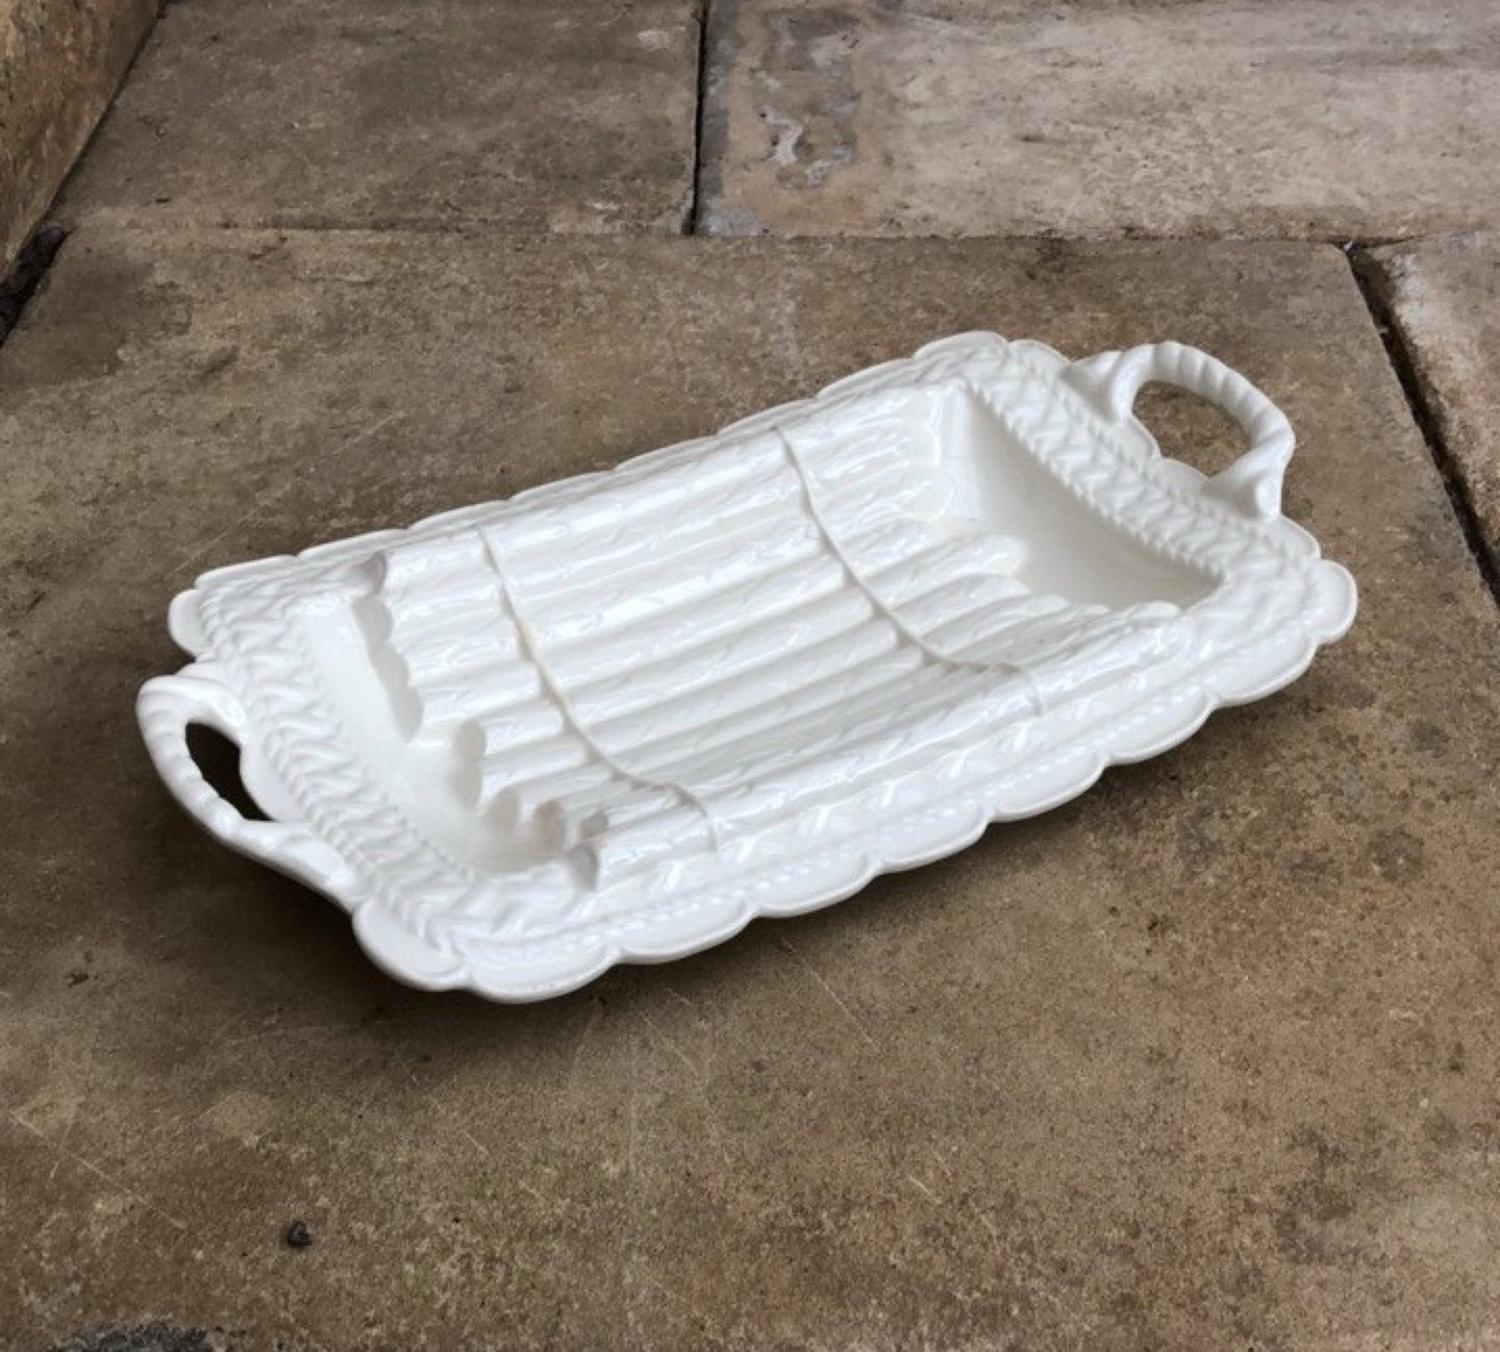 White Asparagus Serving Dish c.1940